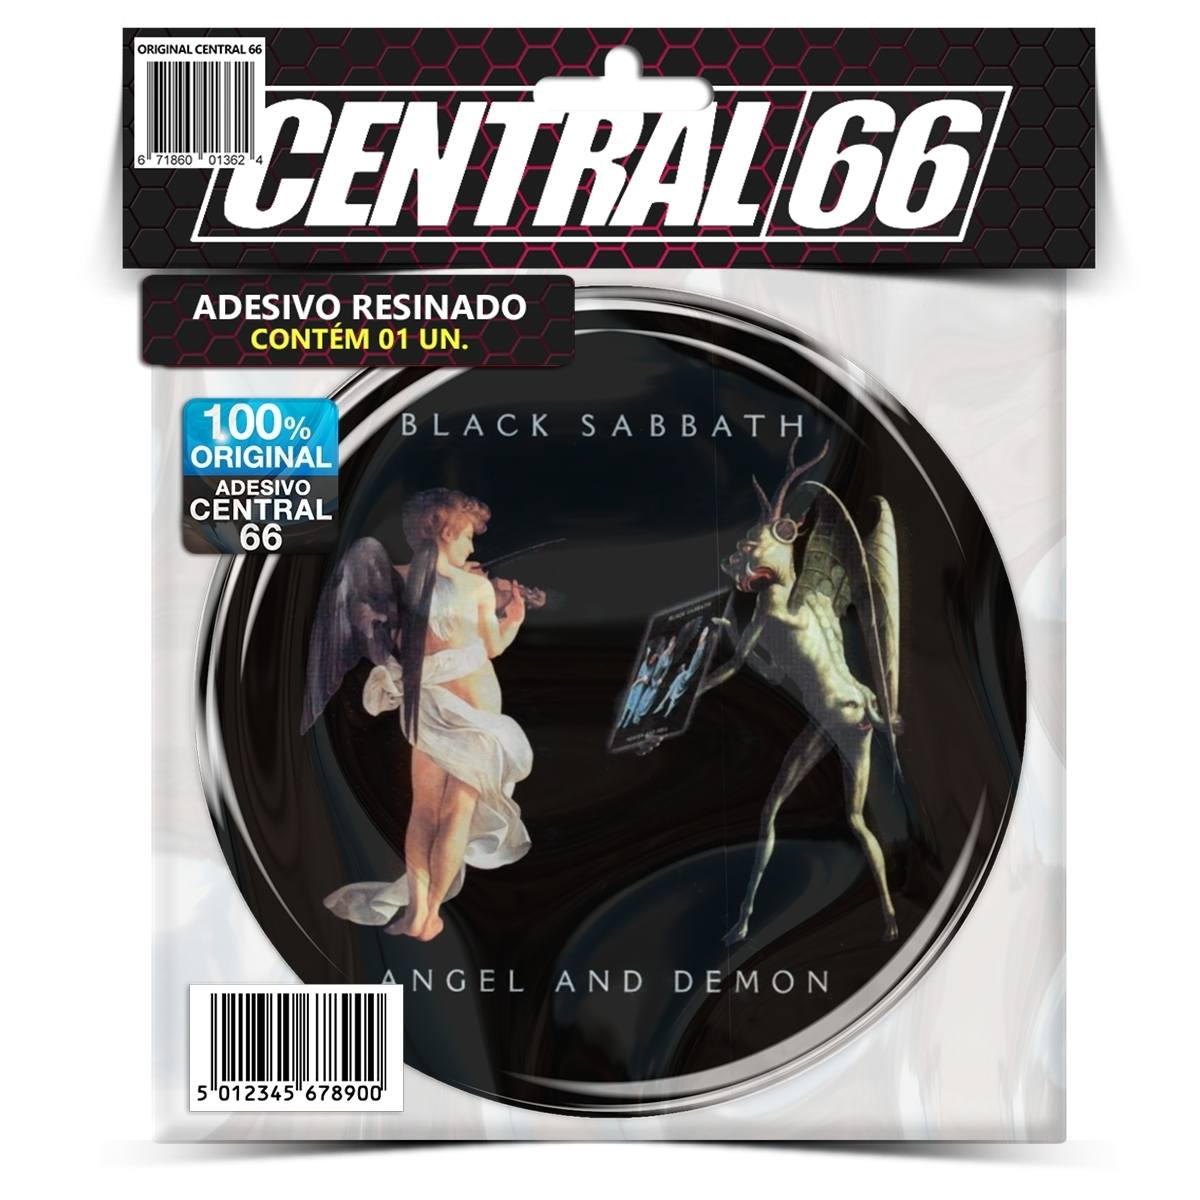 Adesivo Redondo Black Sabbath Angel and Demon – Central 66